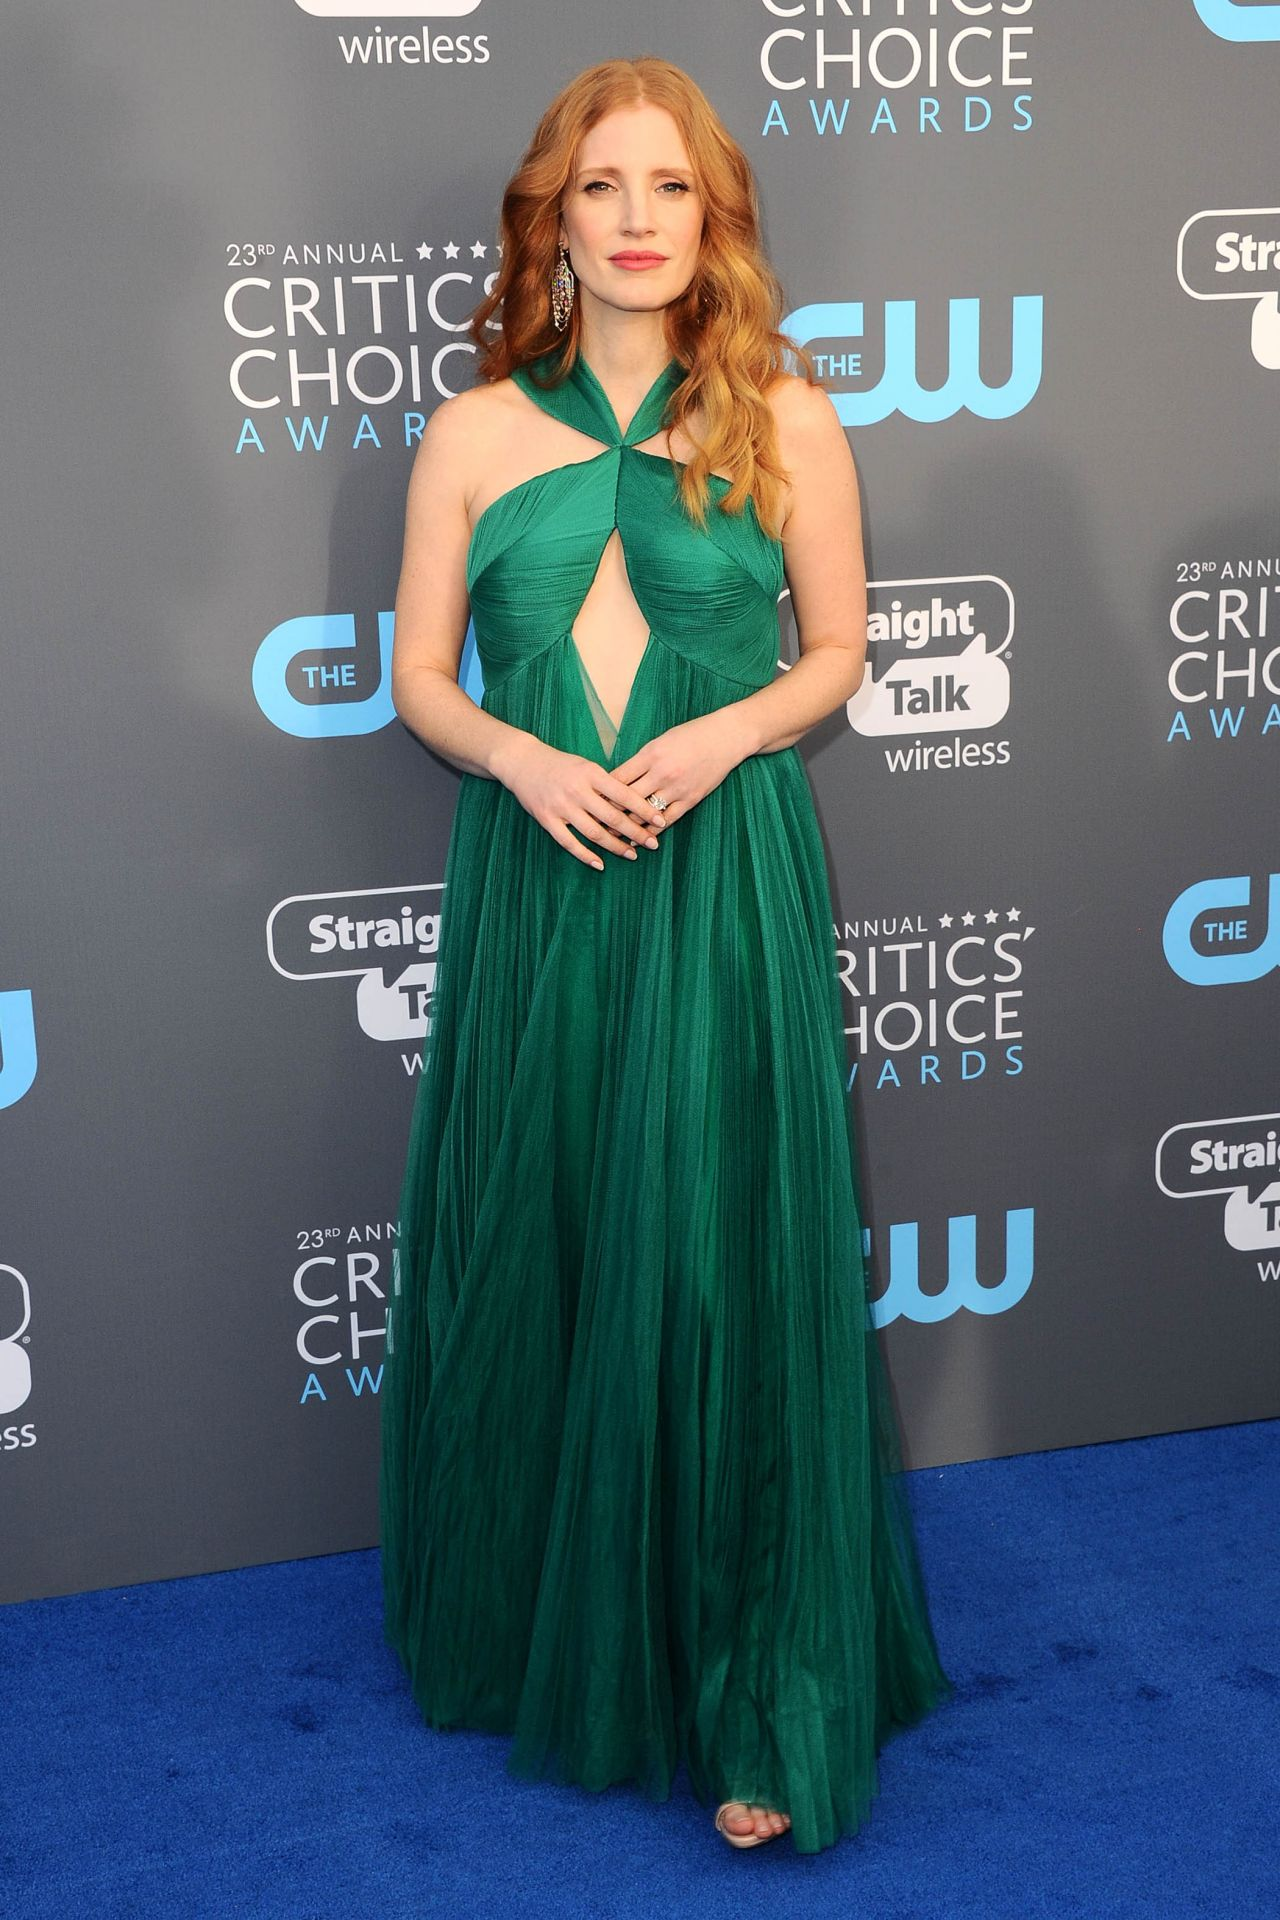 http://celebmafia.com/wp-content/uploads/2018/01/jessica-chastain-2018-critics-choice-awards-0.jpg